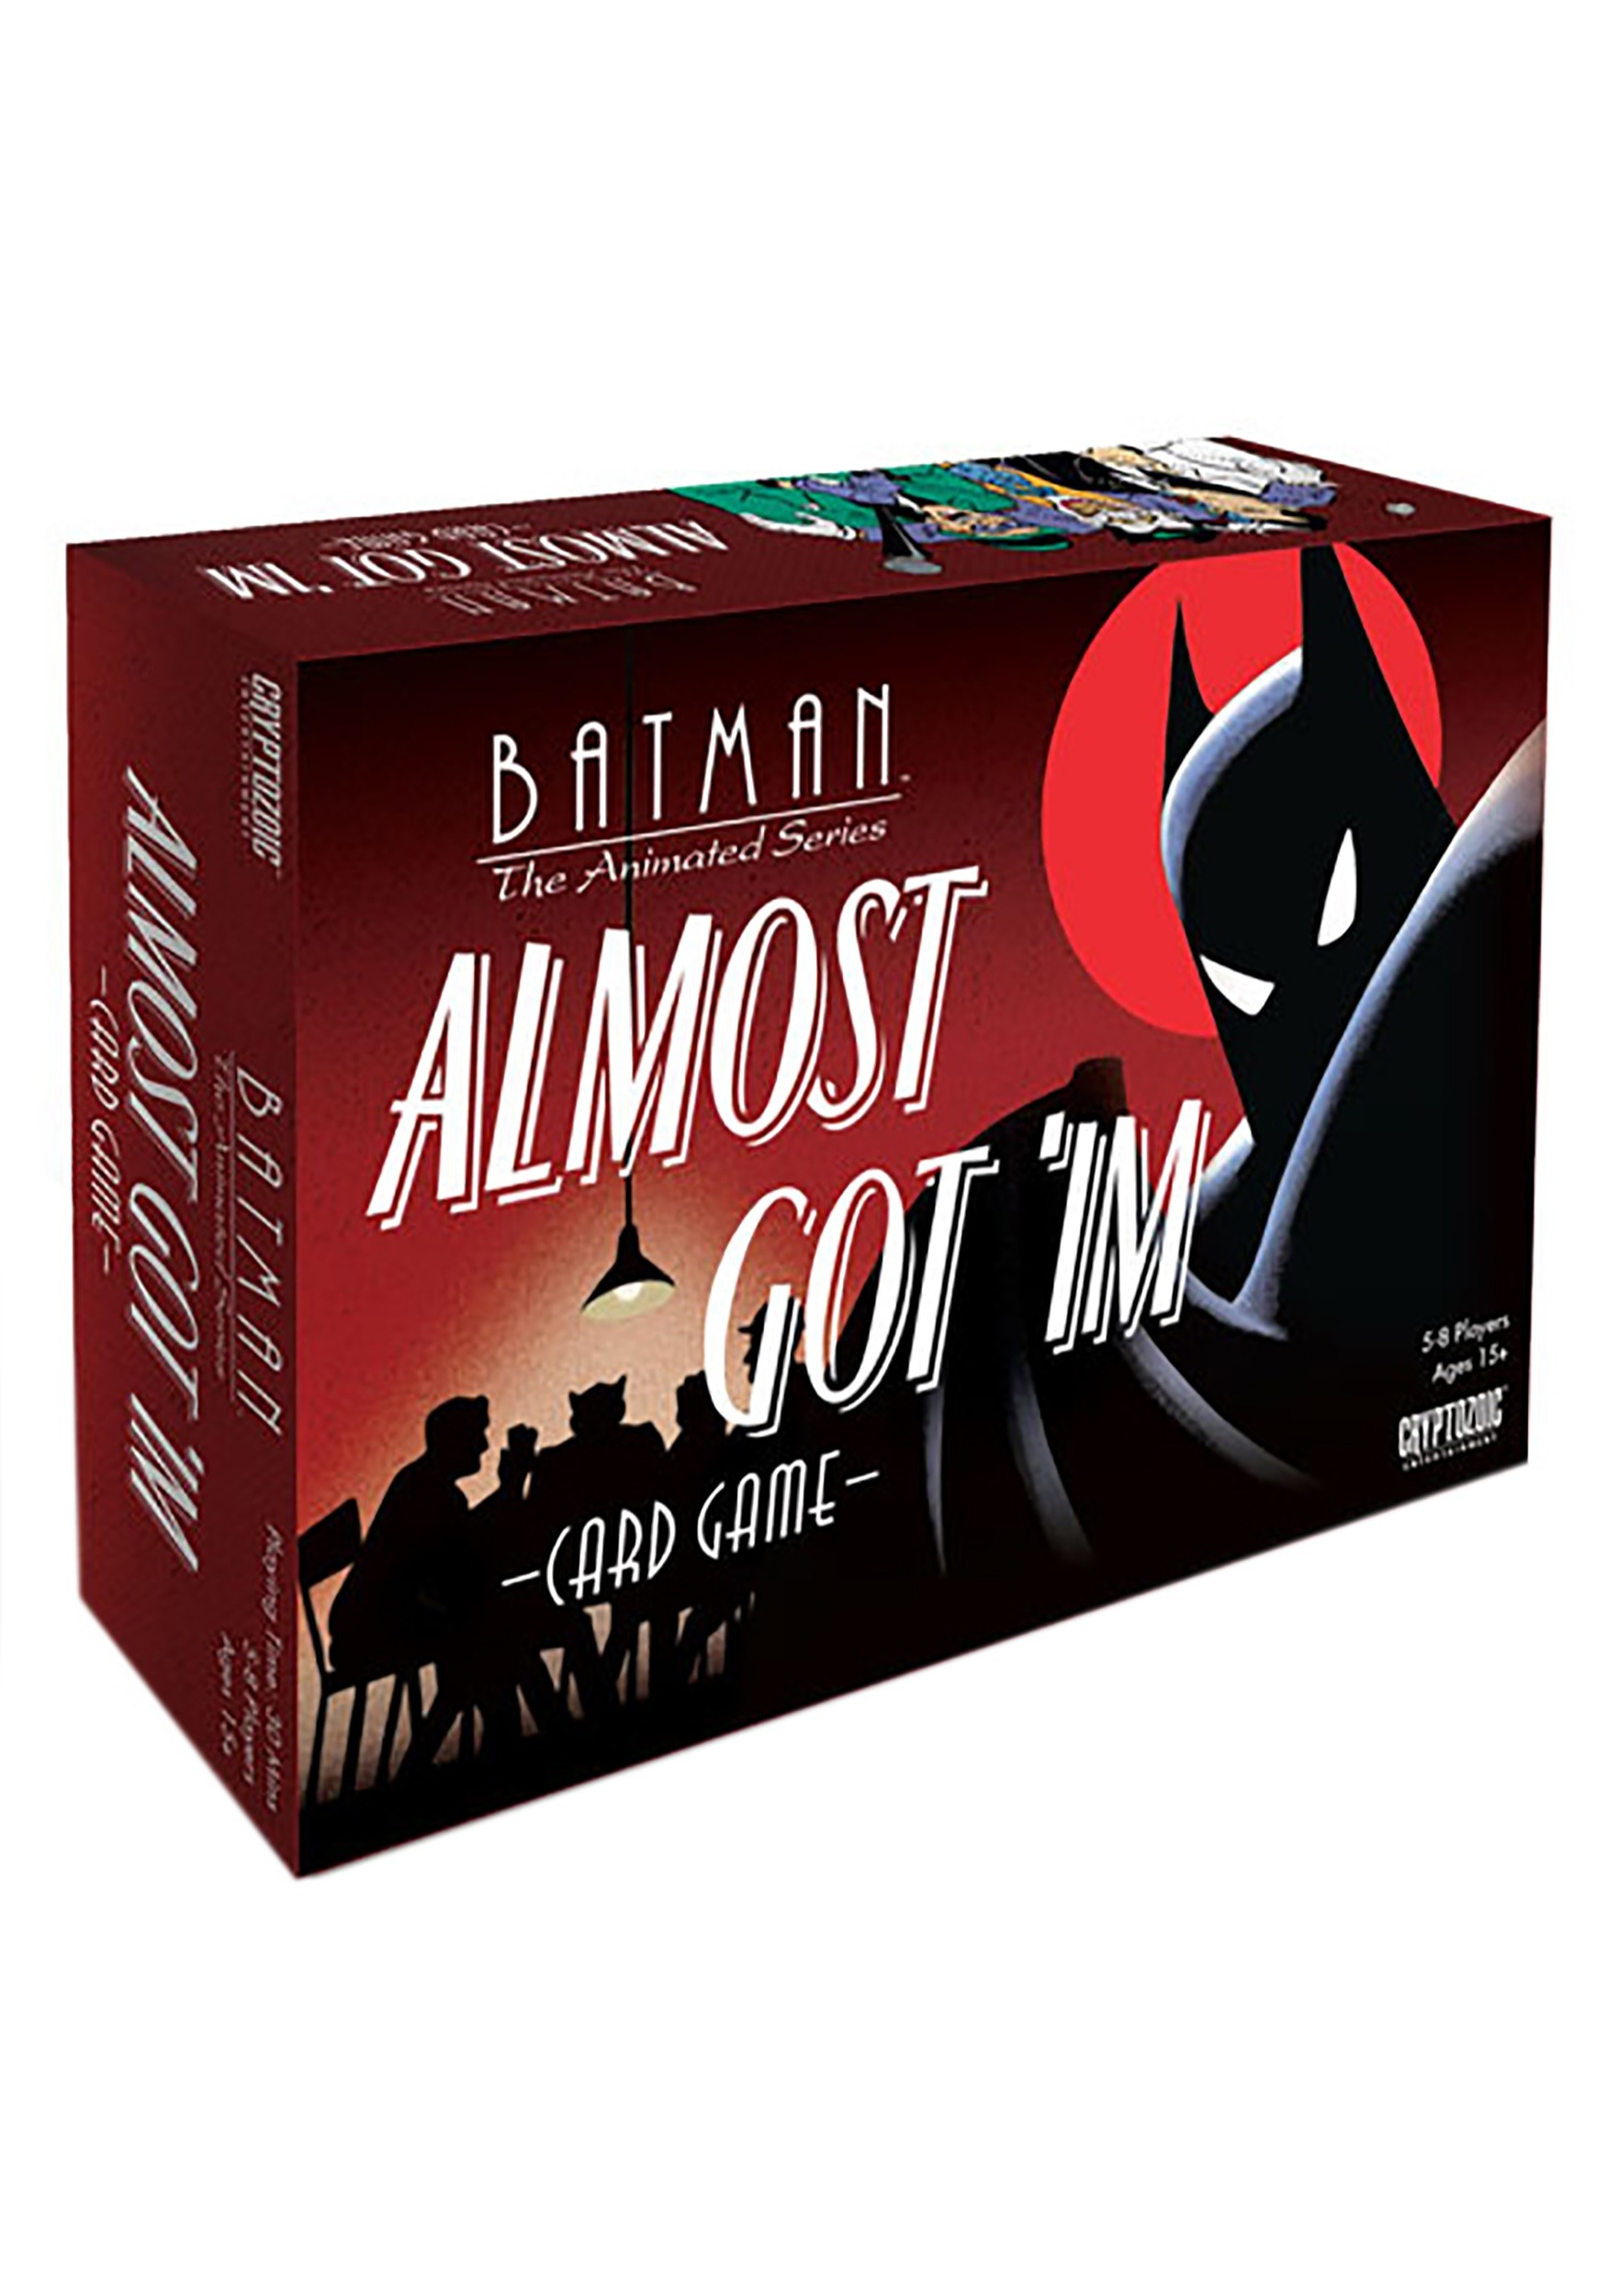 Batman_the_Animated_Series:_Almost_Got_'Im_Card_Game